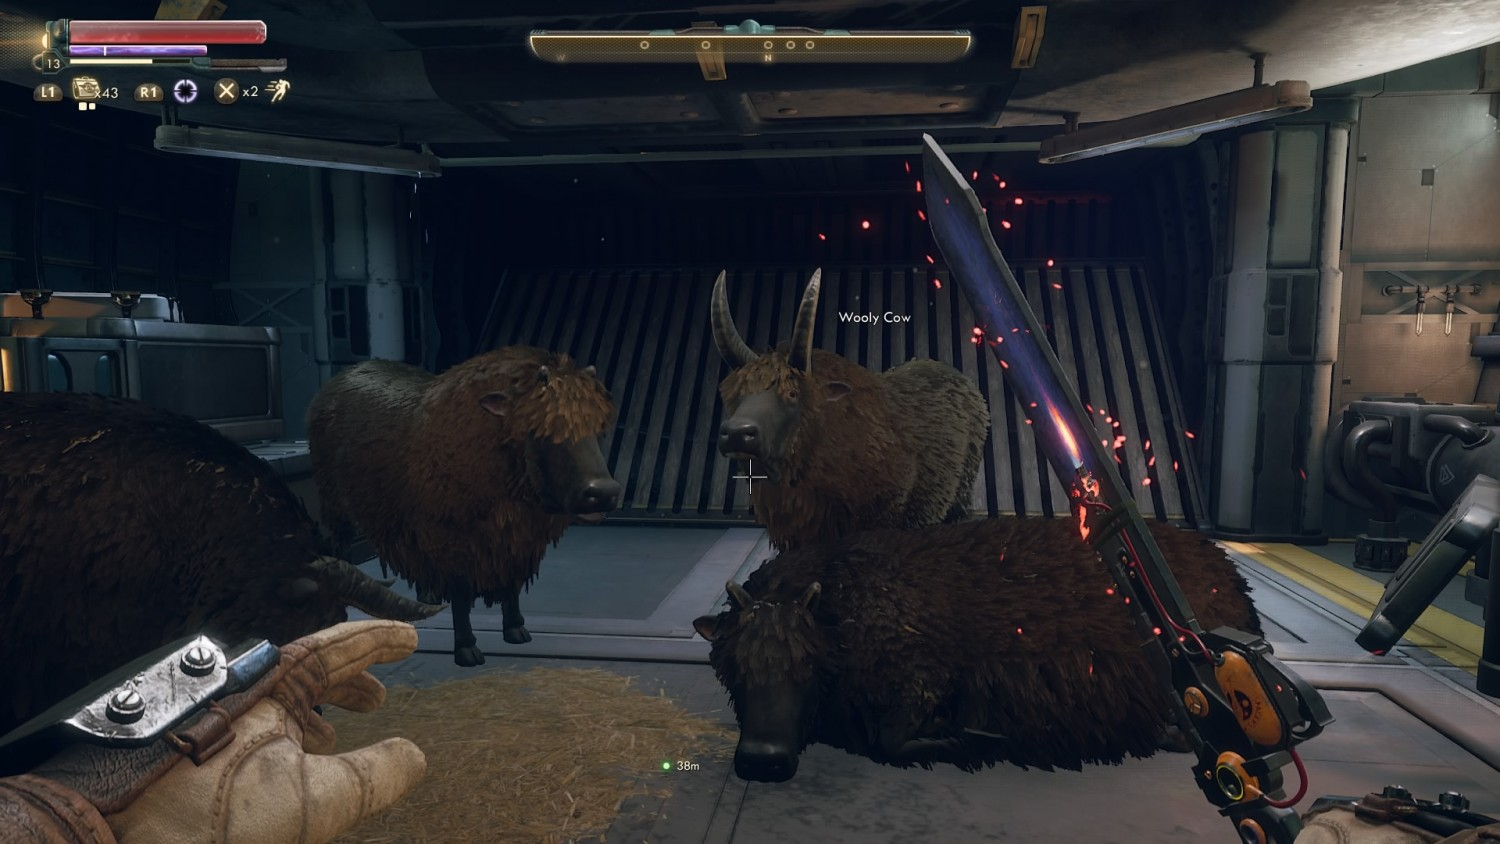 outer worlds wooly cows on ship